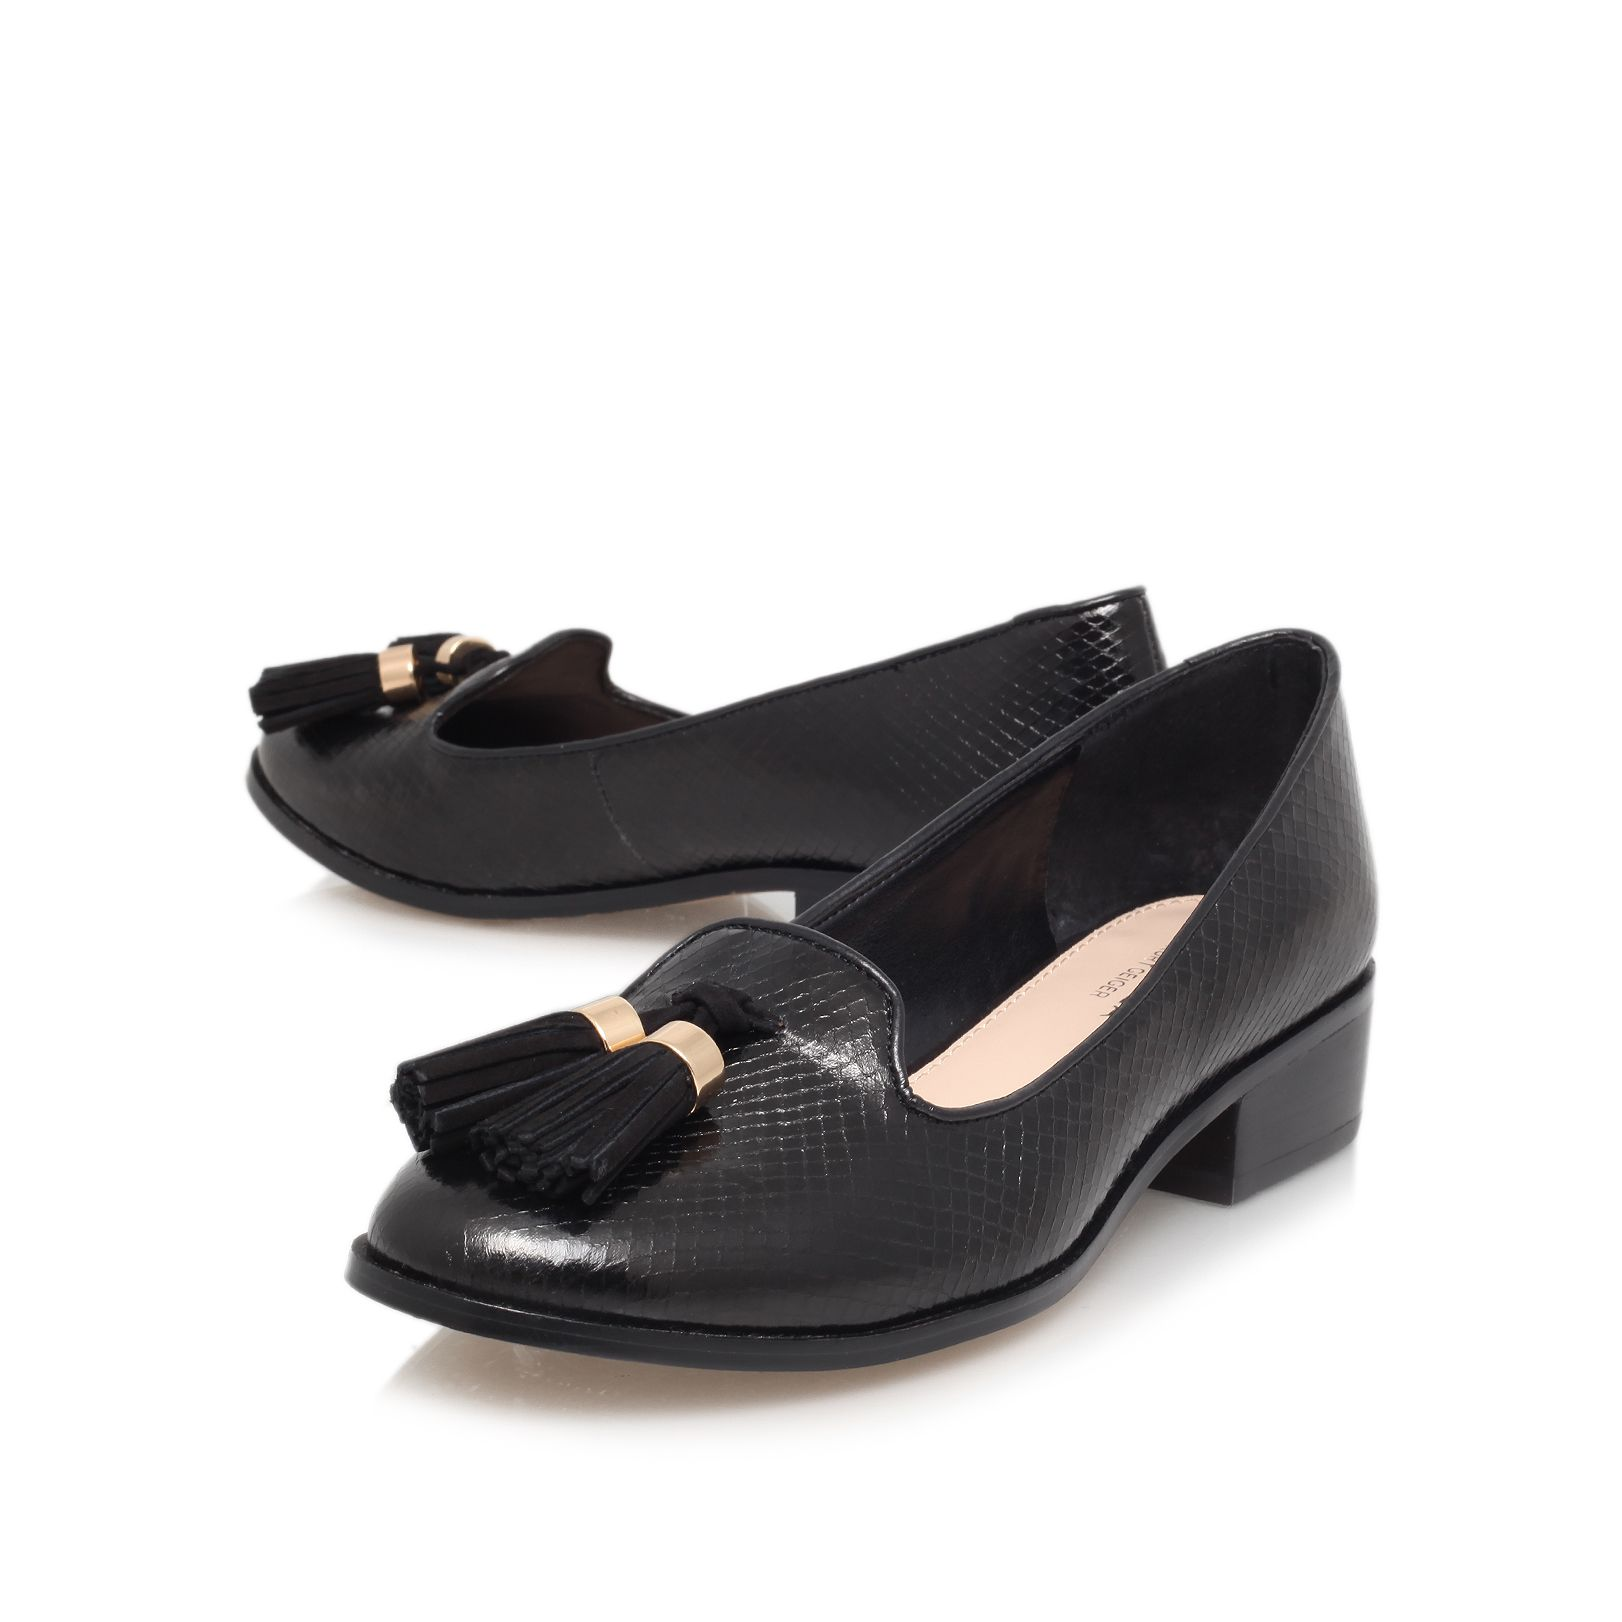 Laura low heeled slip ons